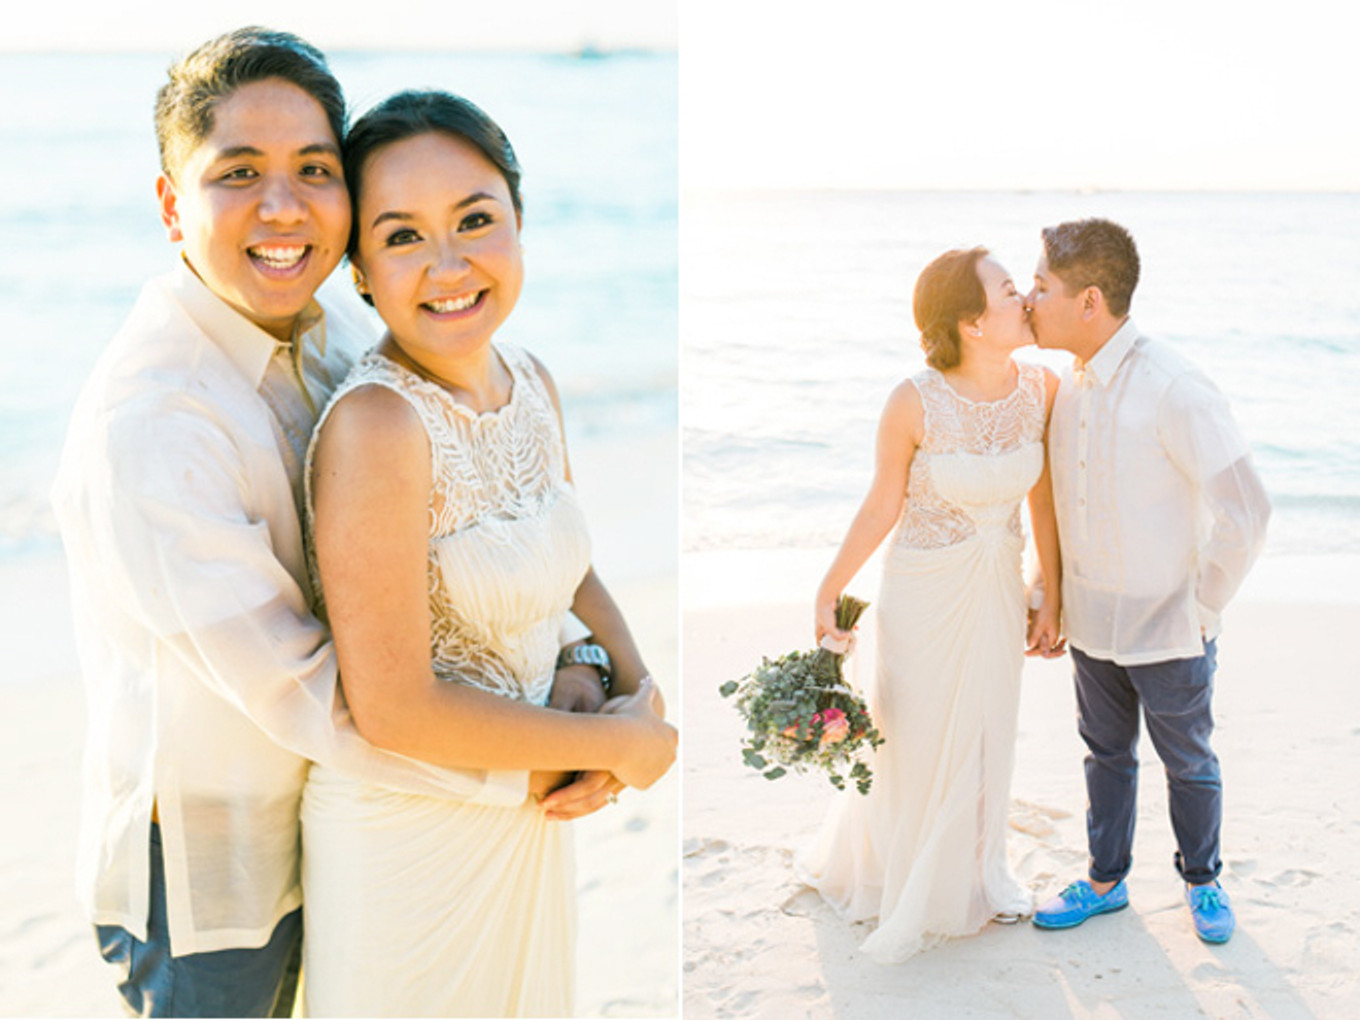 A Colorful Travel-Themed Wedding in Boracay, Philippines - Bridestory Blog